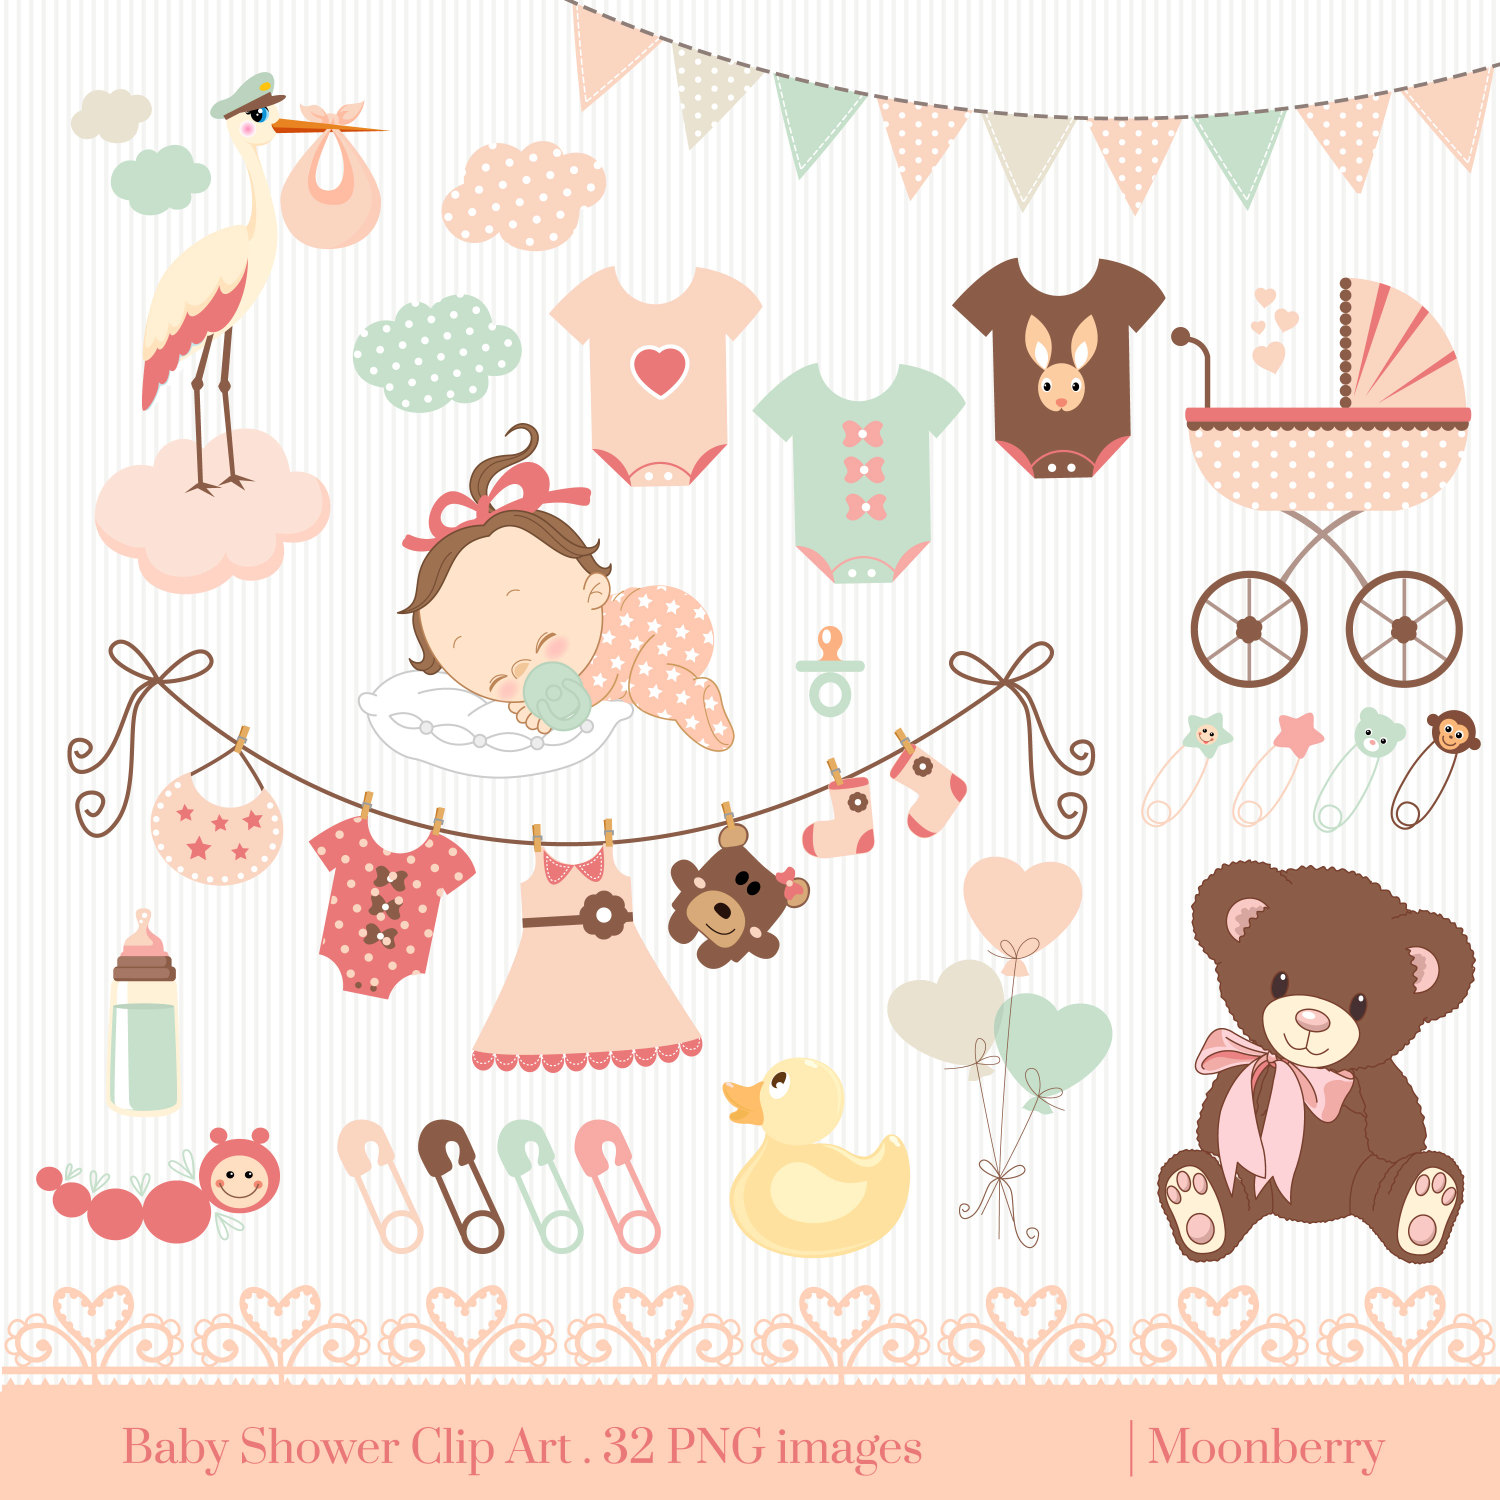 Rustic baby shower clipart vector free download Rustic clipart baby shower - 199 transparent clip arts ... vector free download